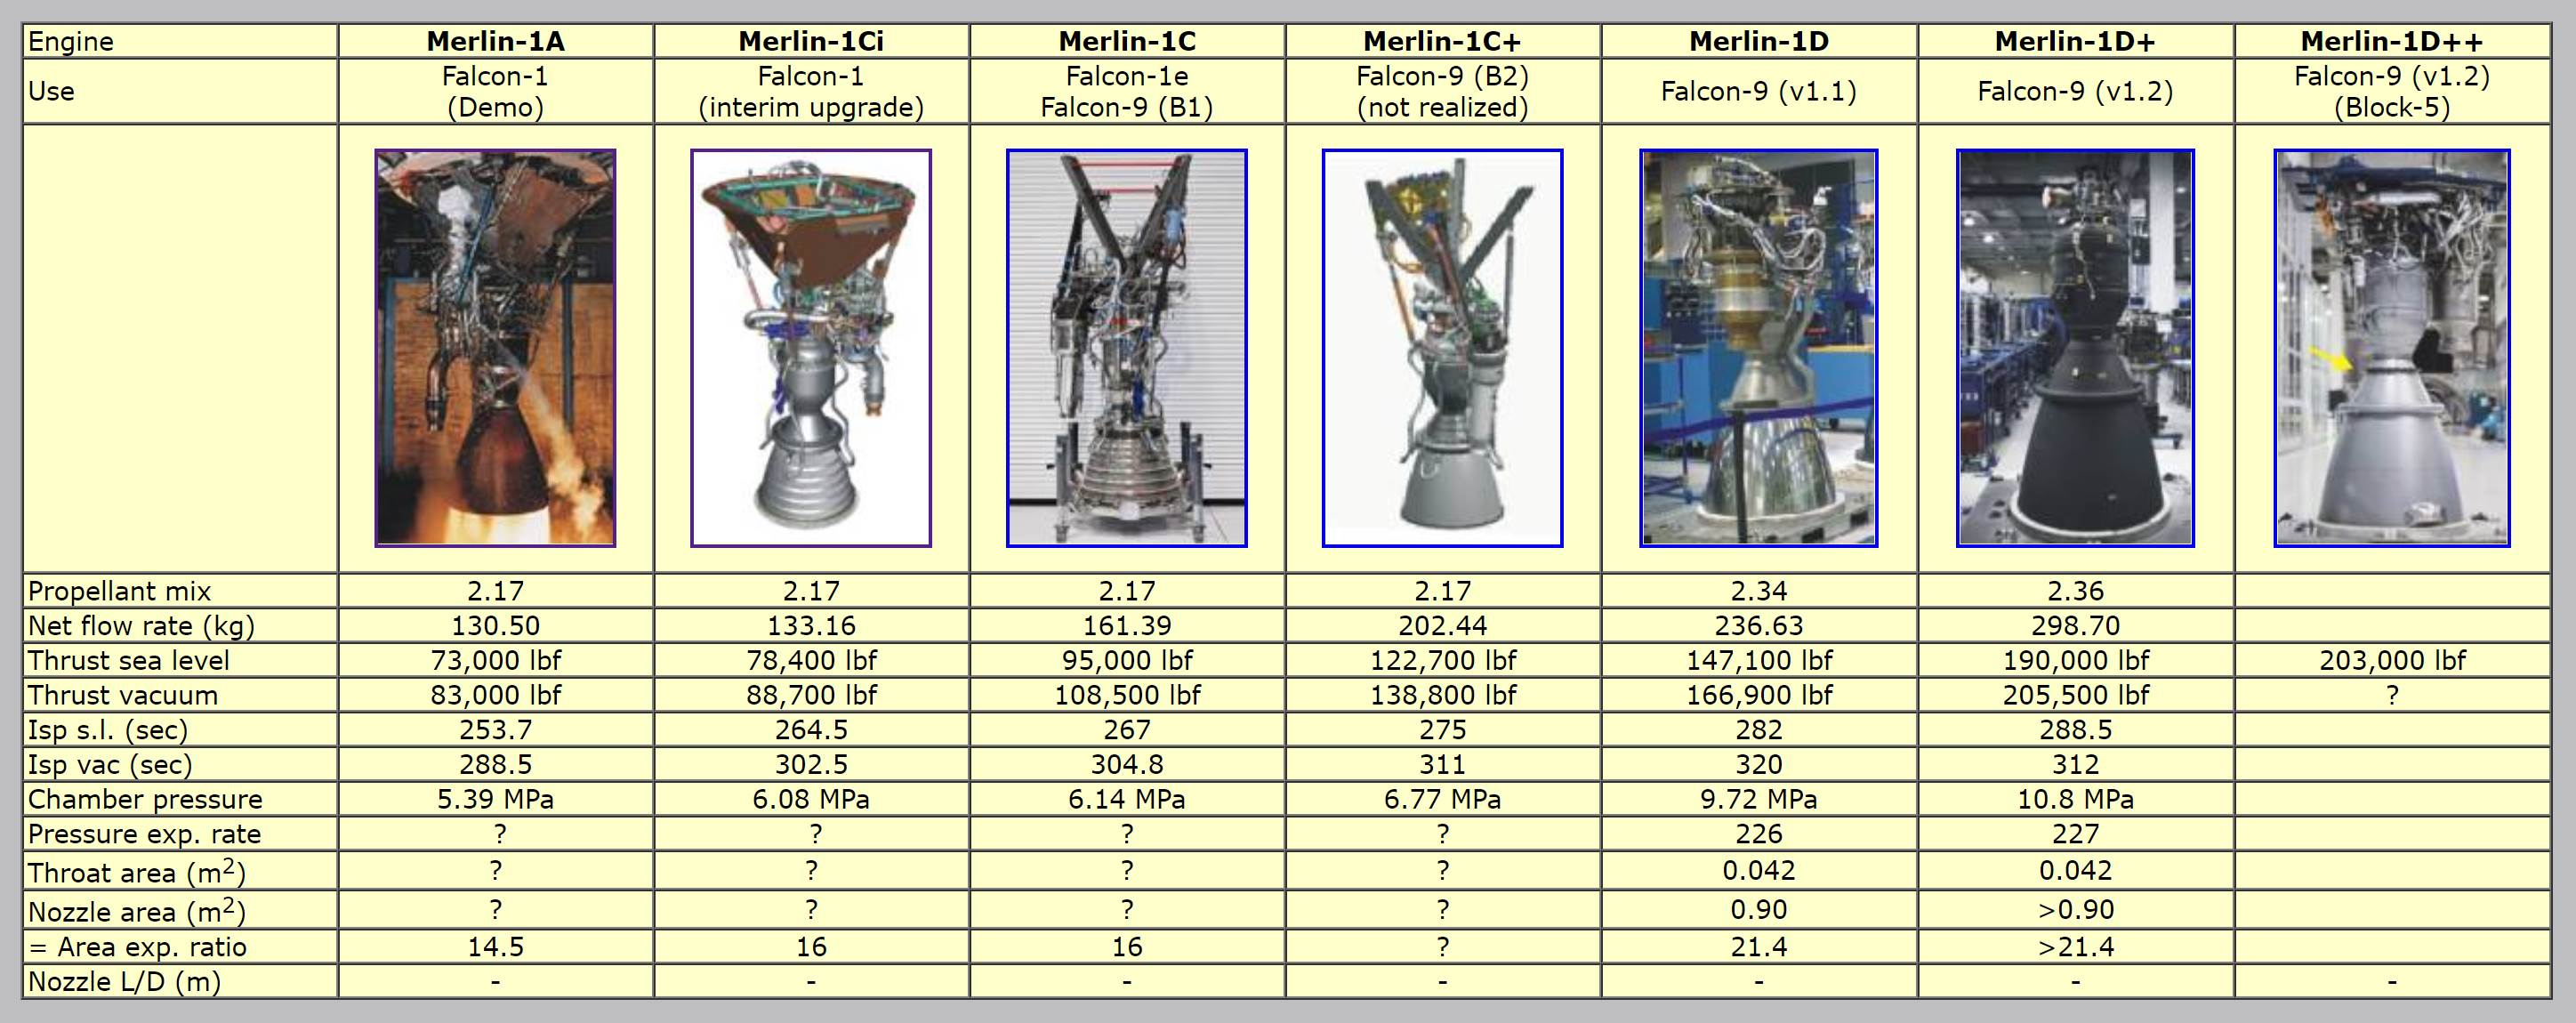 Merlin engine history (B14643) 1